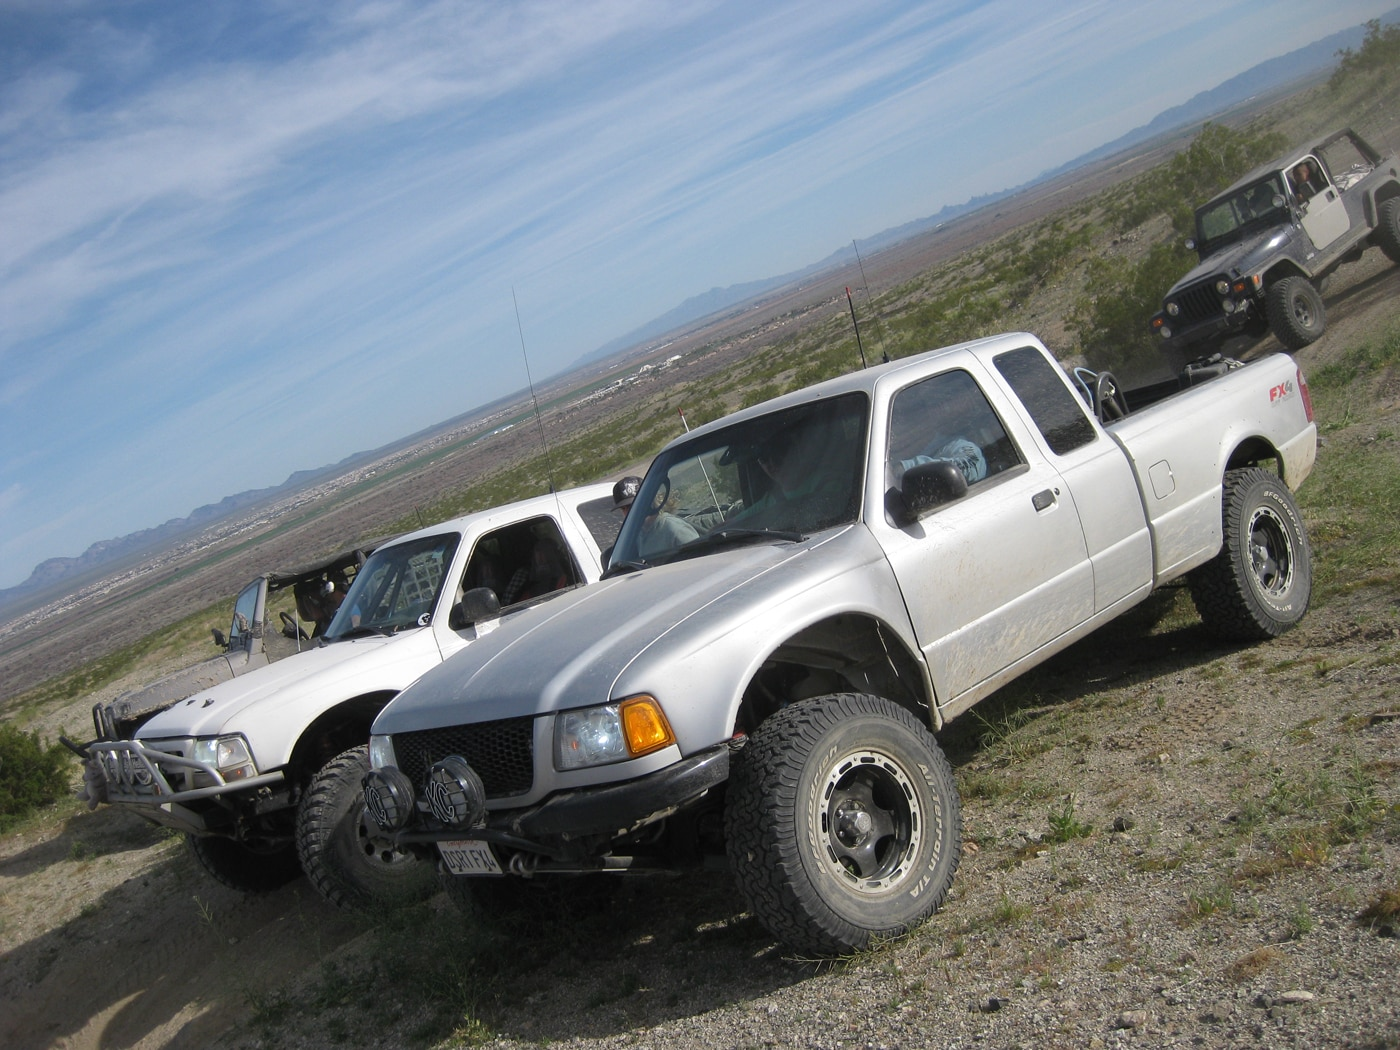 129 1103 8080+mojave road trail 2011+ford rangers